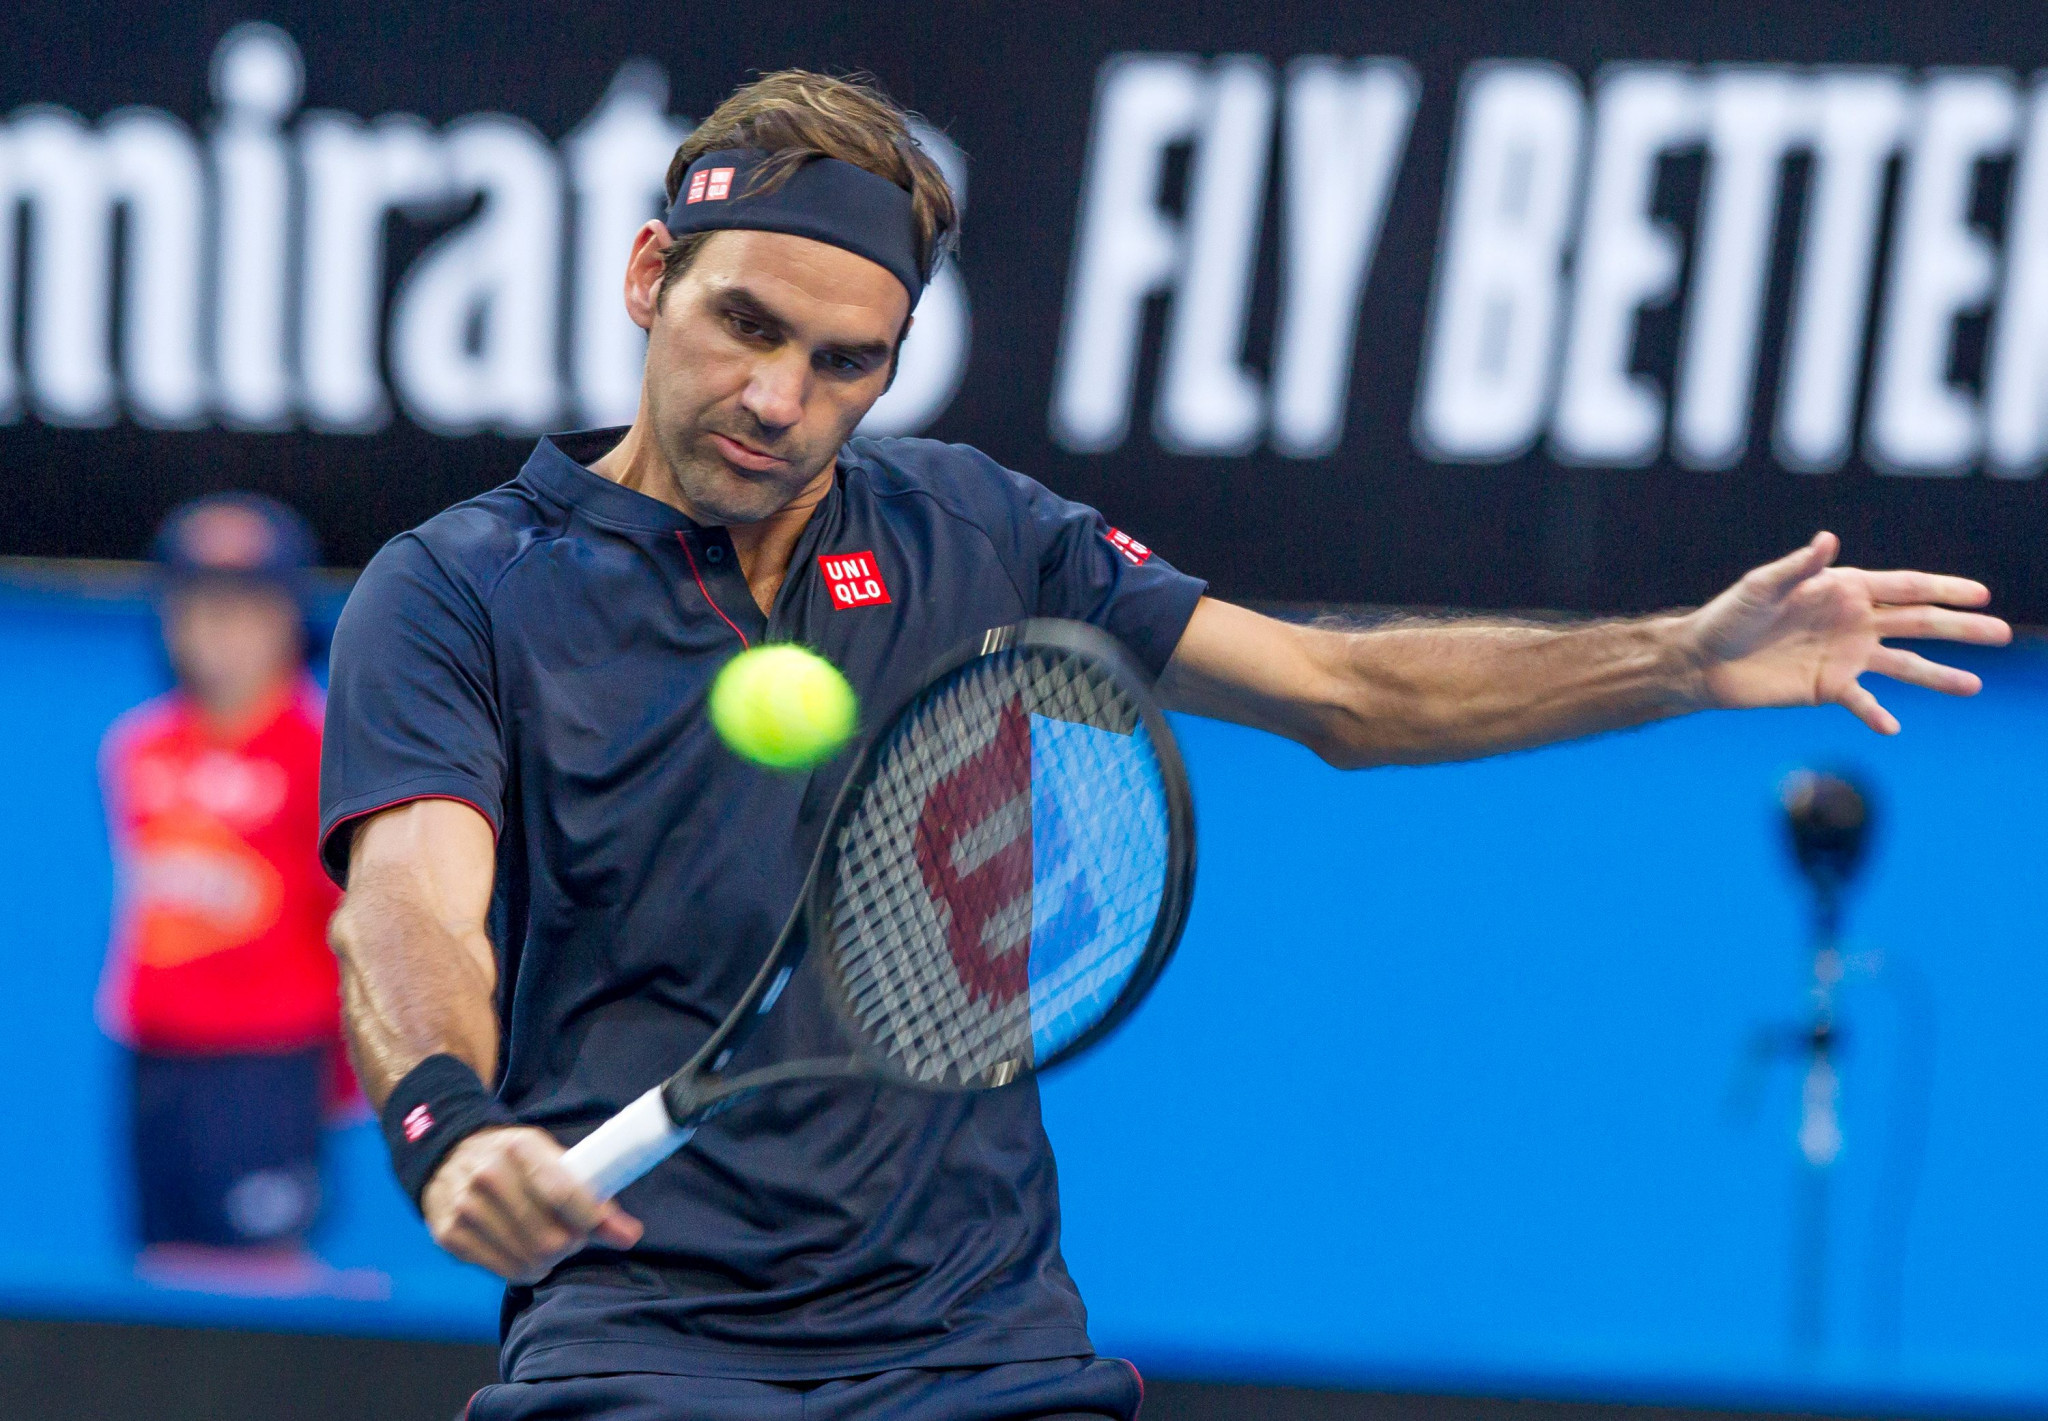 Roger Federer defeated Britain's Cameron Norrie to help Switzerland win its first tie of the Hopman Cup in Perth ©Getty Images